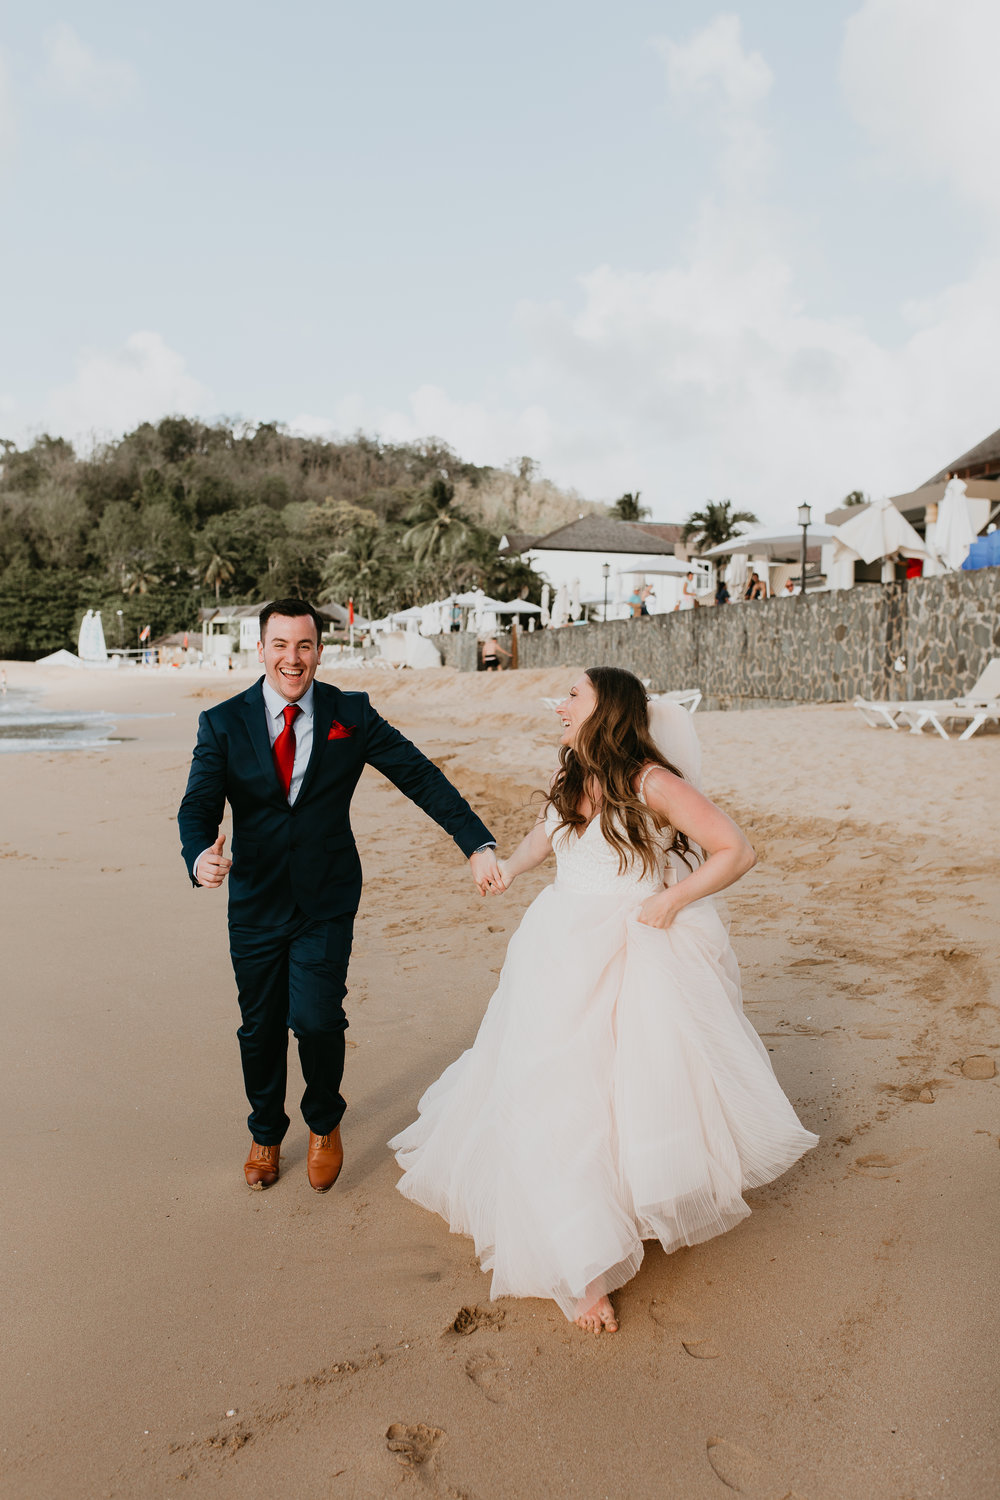 nicole-daacke-photography-destination-wedding-in-st-lucia-sandals-la-toc-intimate-island-wedding-carribean-elopement-photographer-chill-island-wedding-94.jpg